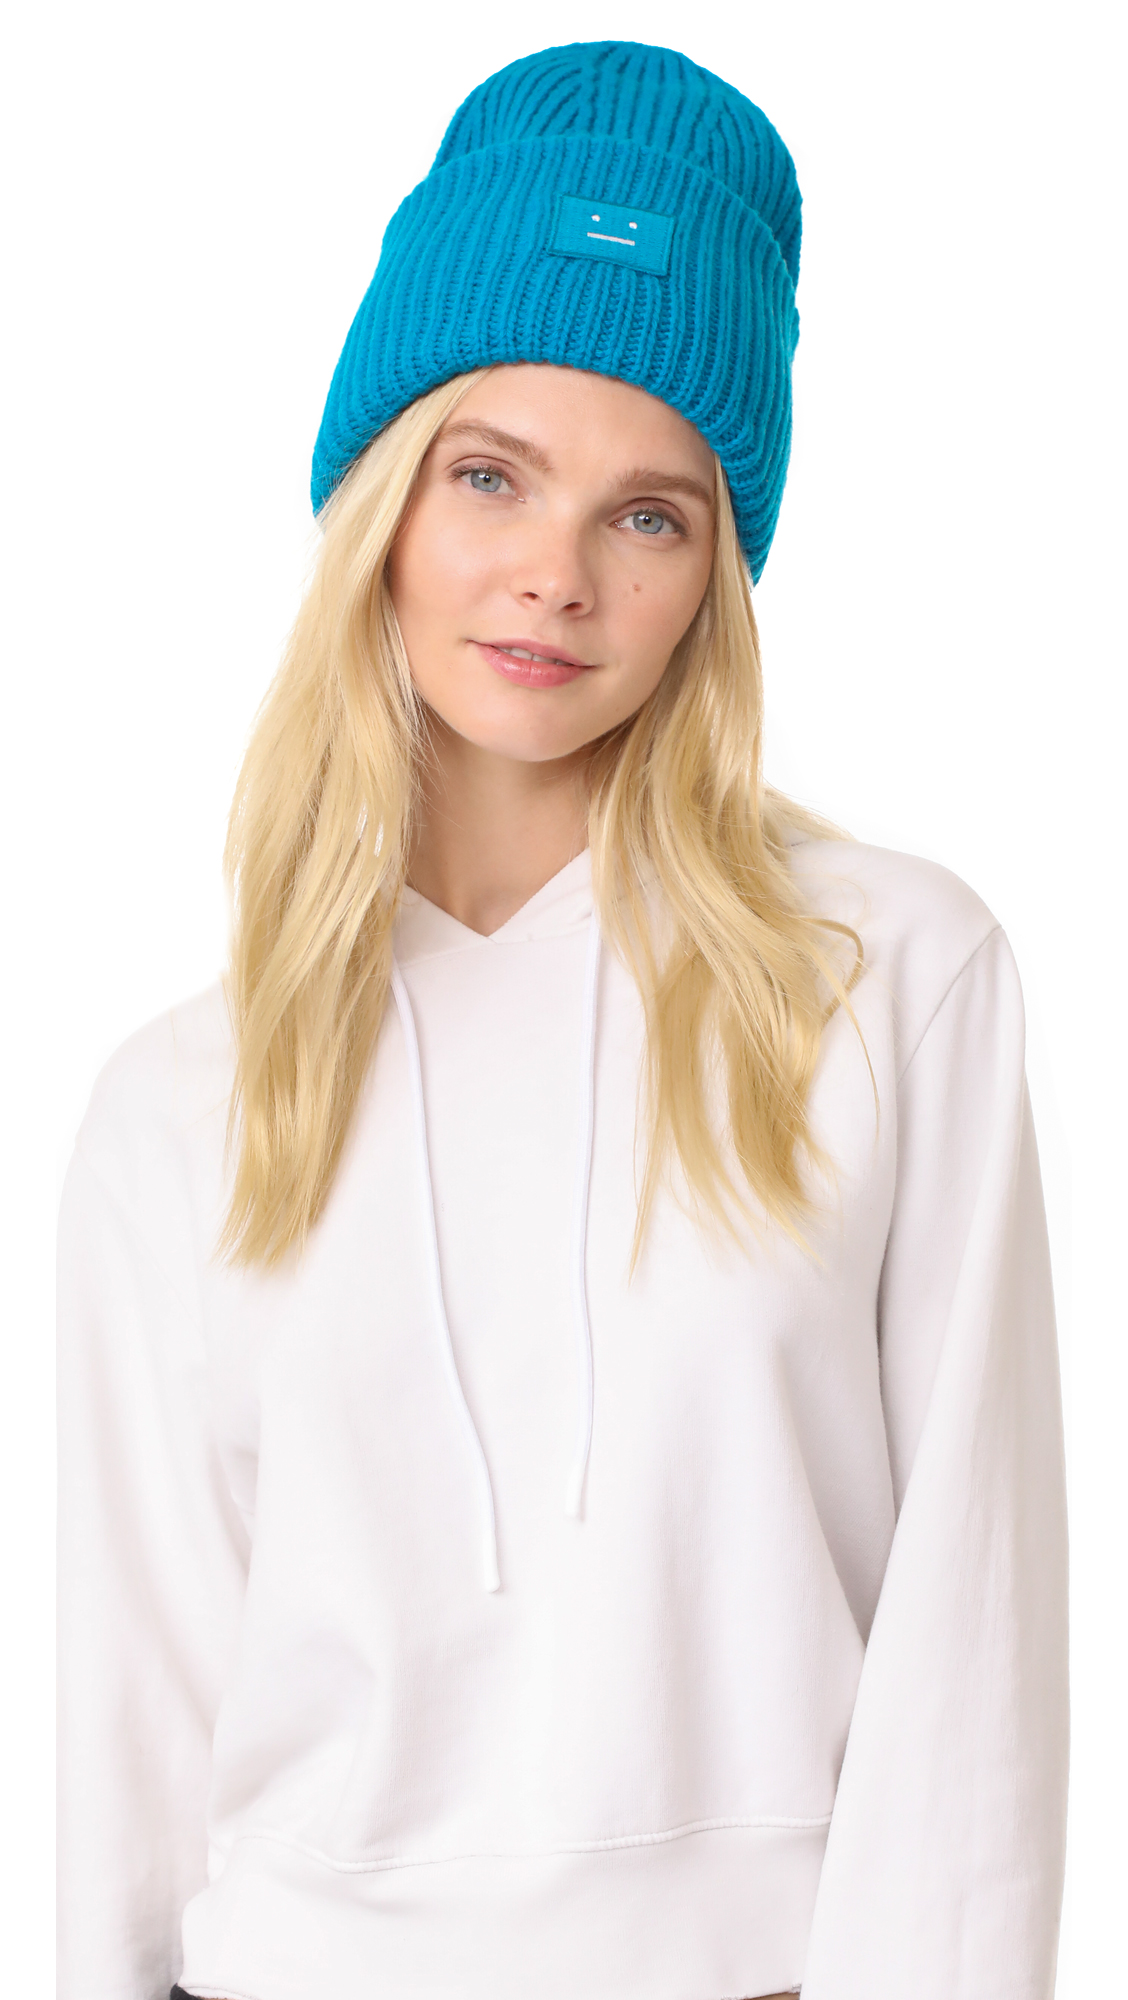 Acne Studios Pansy with Face Hat - Turquoise